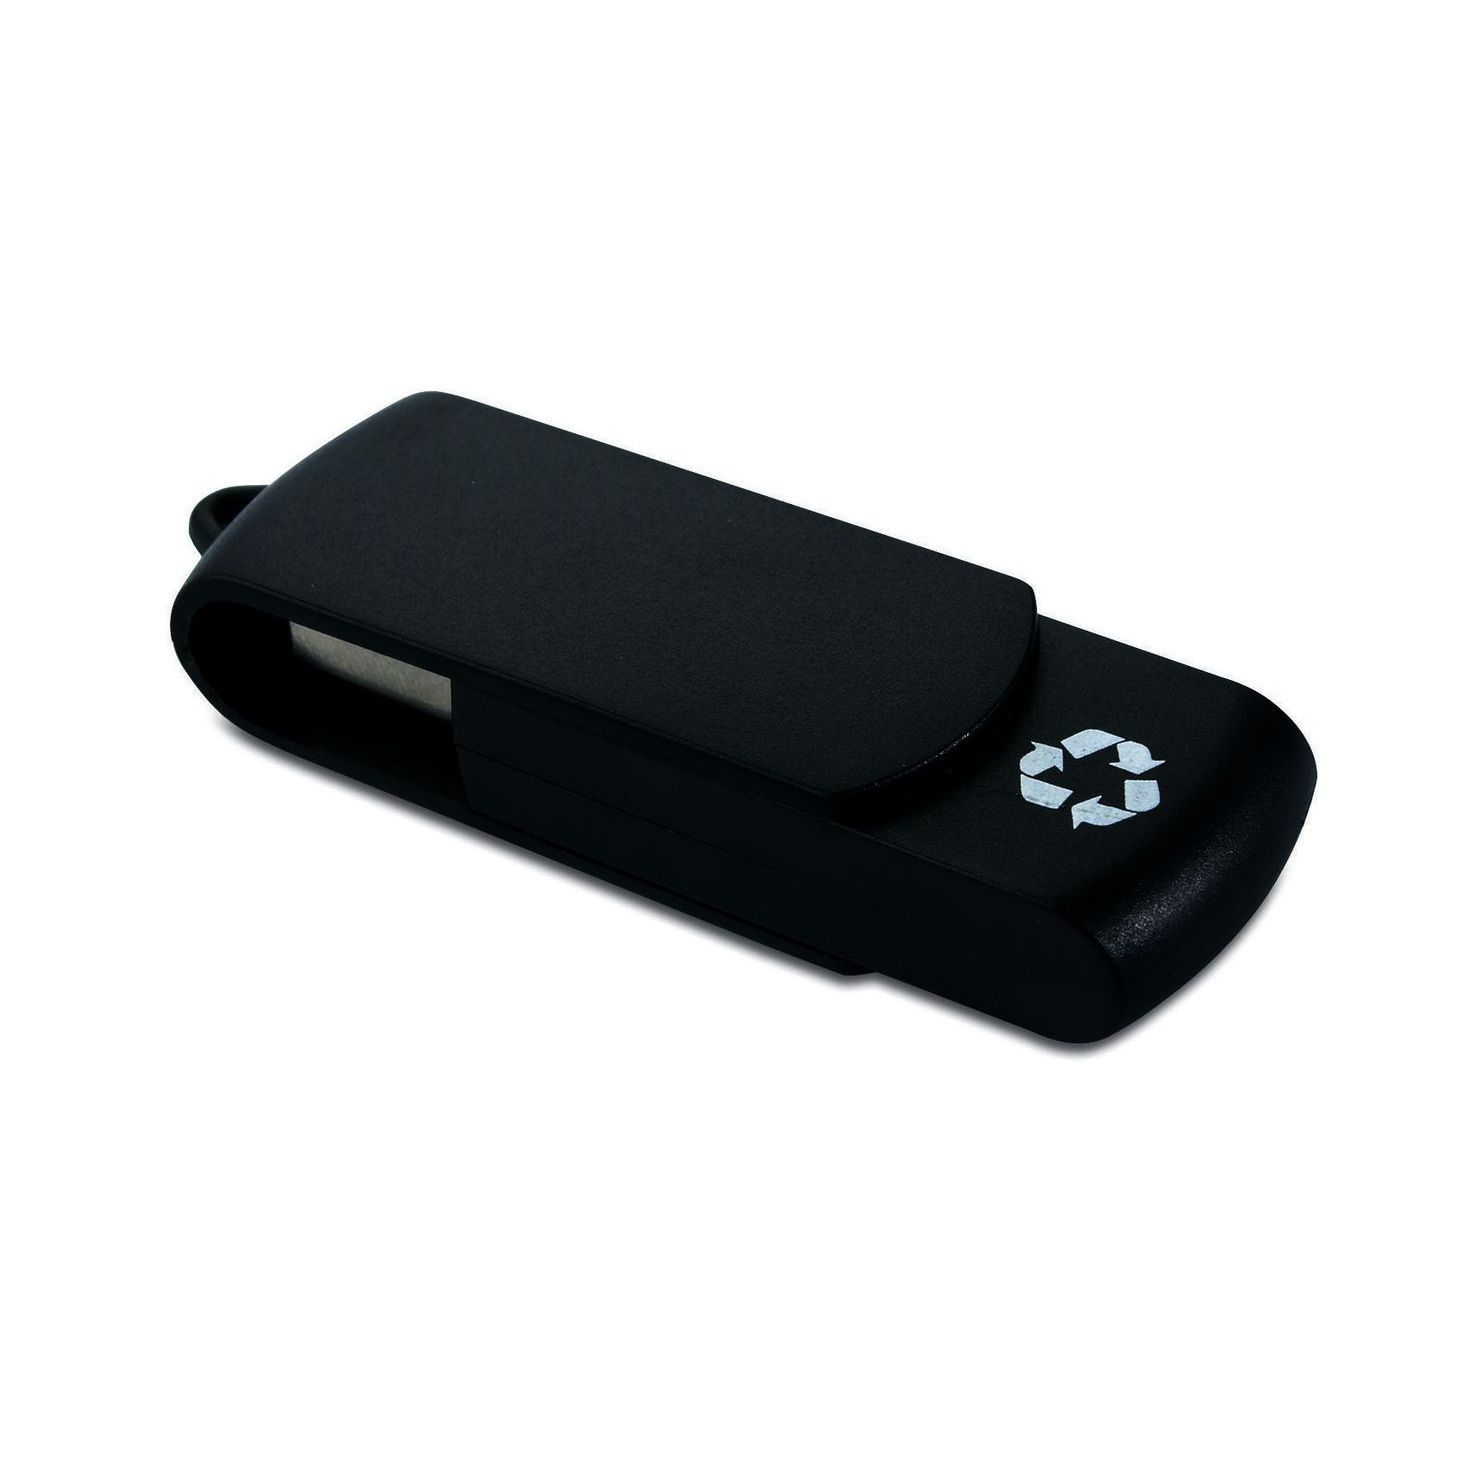 Zwarte USB stick gerecycled | 8GB